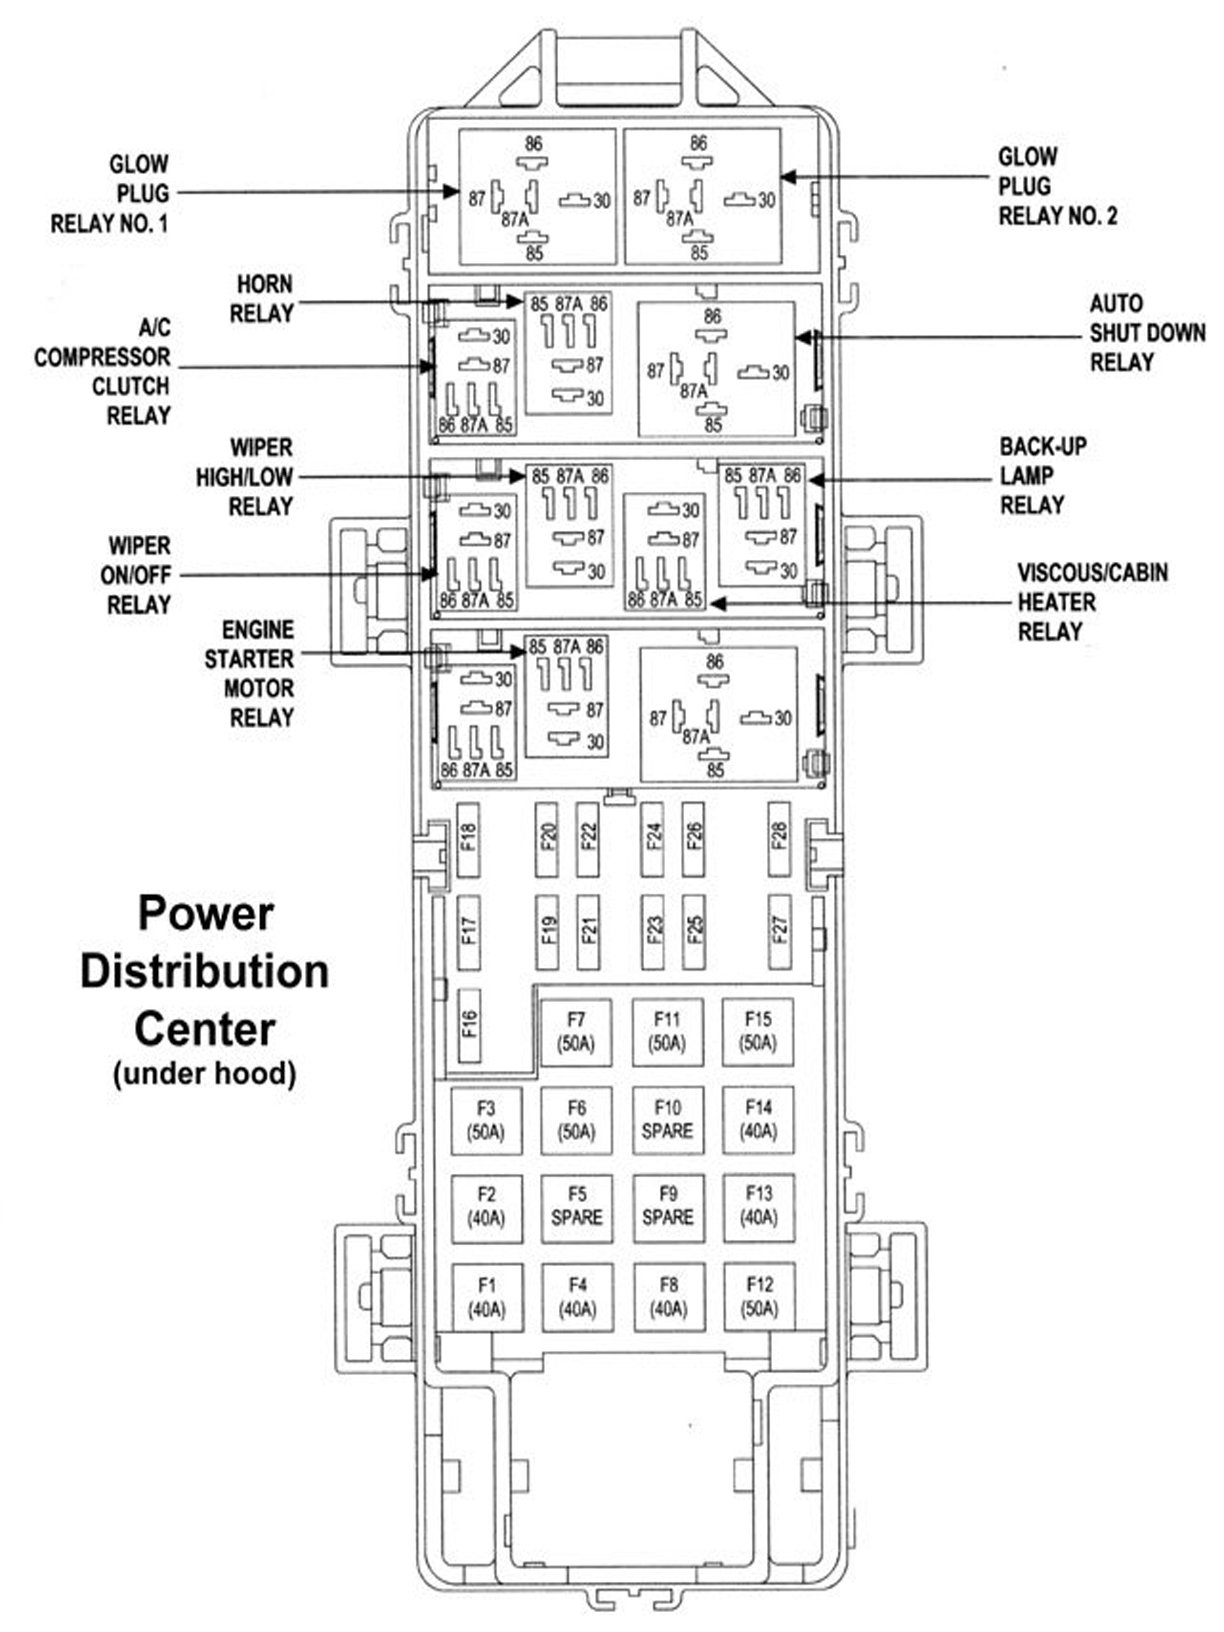 98 Jeep Xj Fuse Box Diagram Auto Electrical Wiring Airbag For Wrangler Grand Cherokee Wj 1999 To 2004